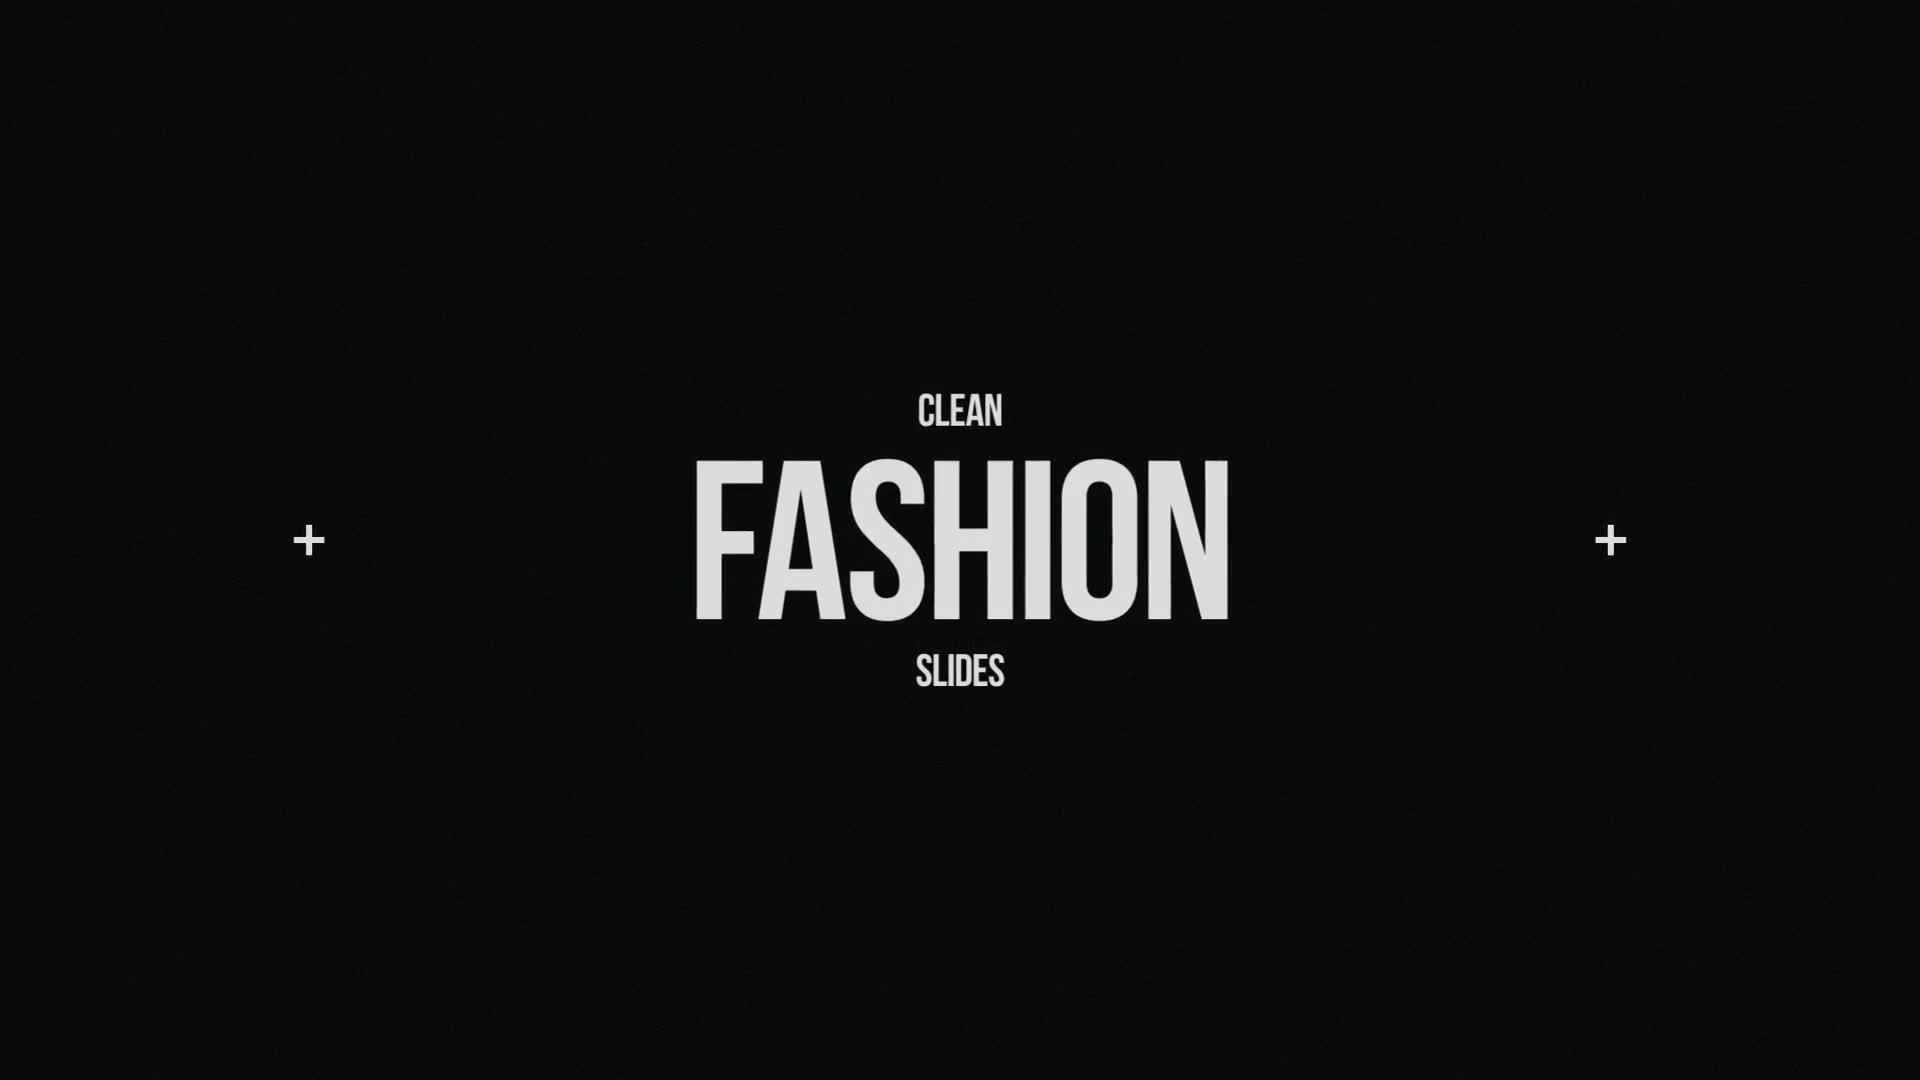 Clean Fashion Slides - Download Videohive 15801799